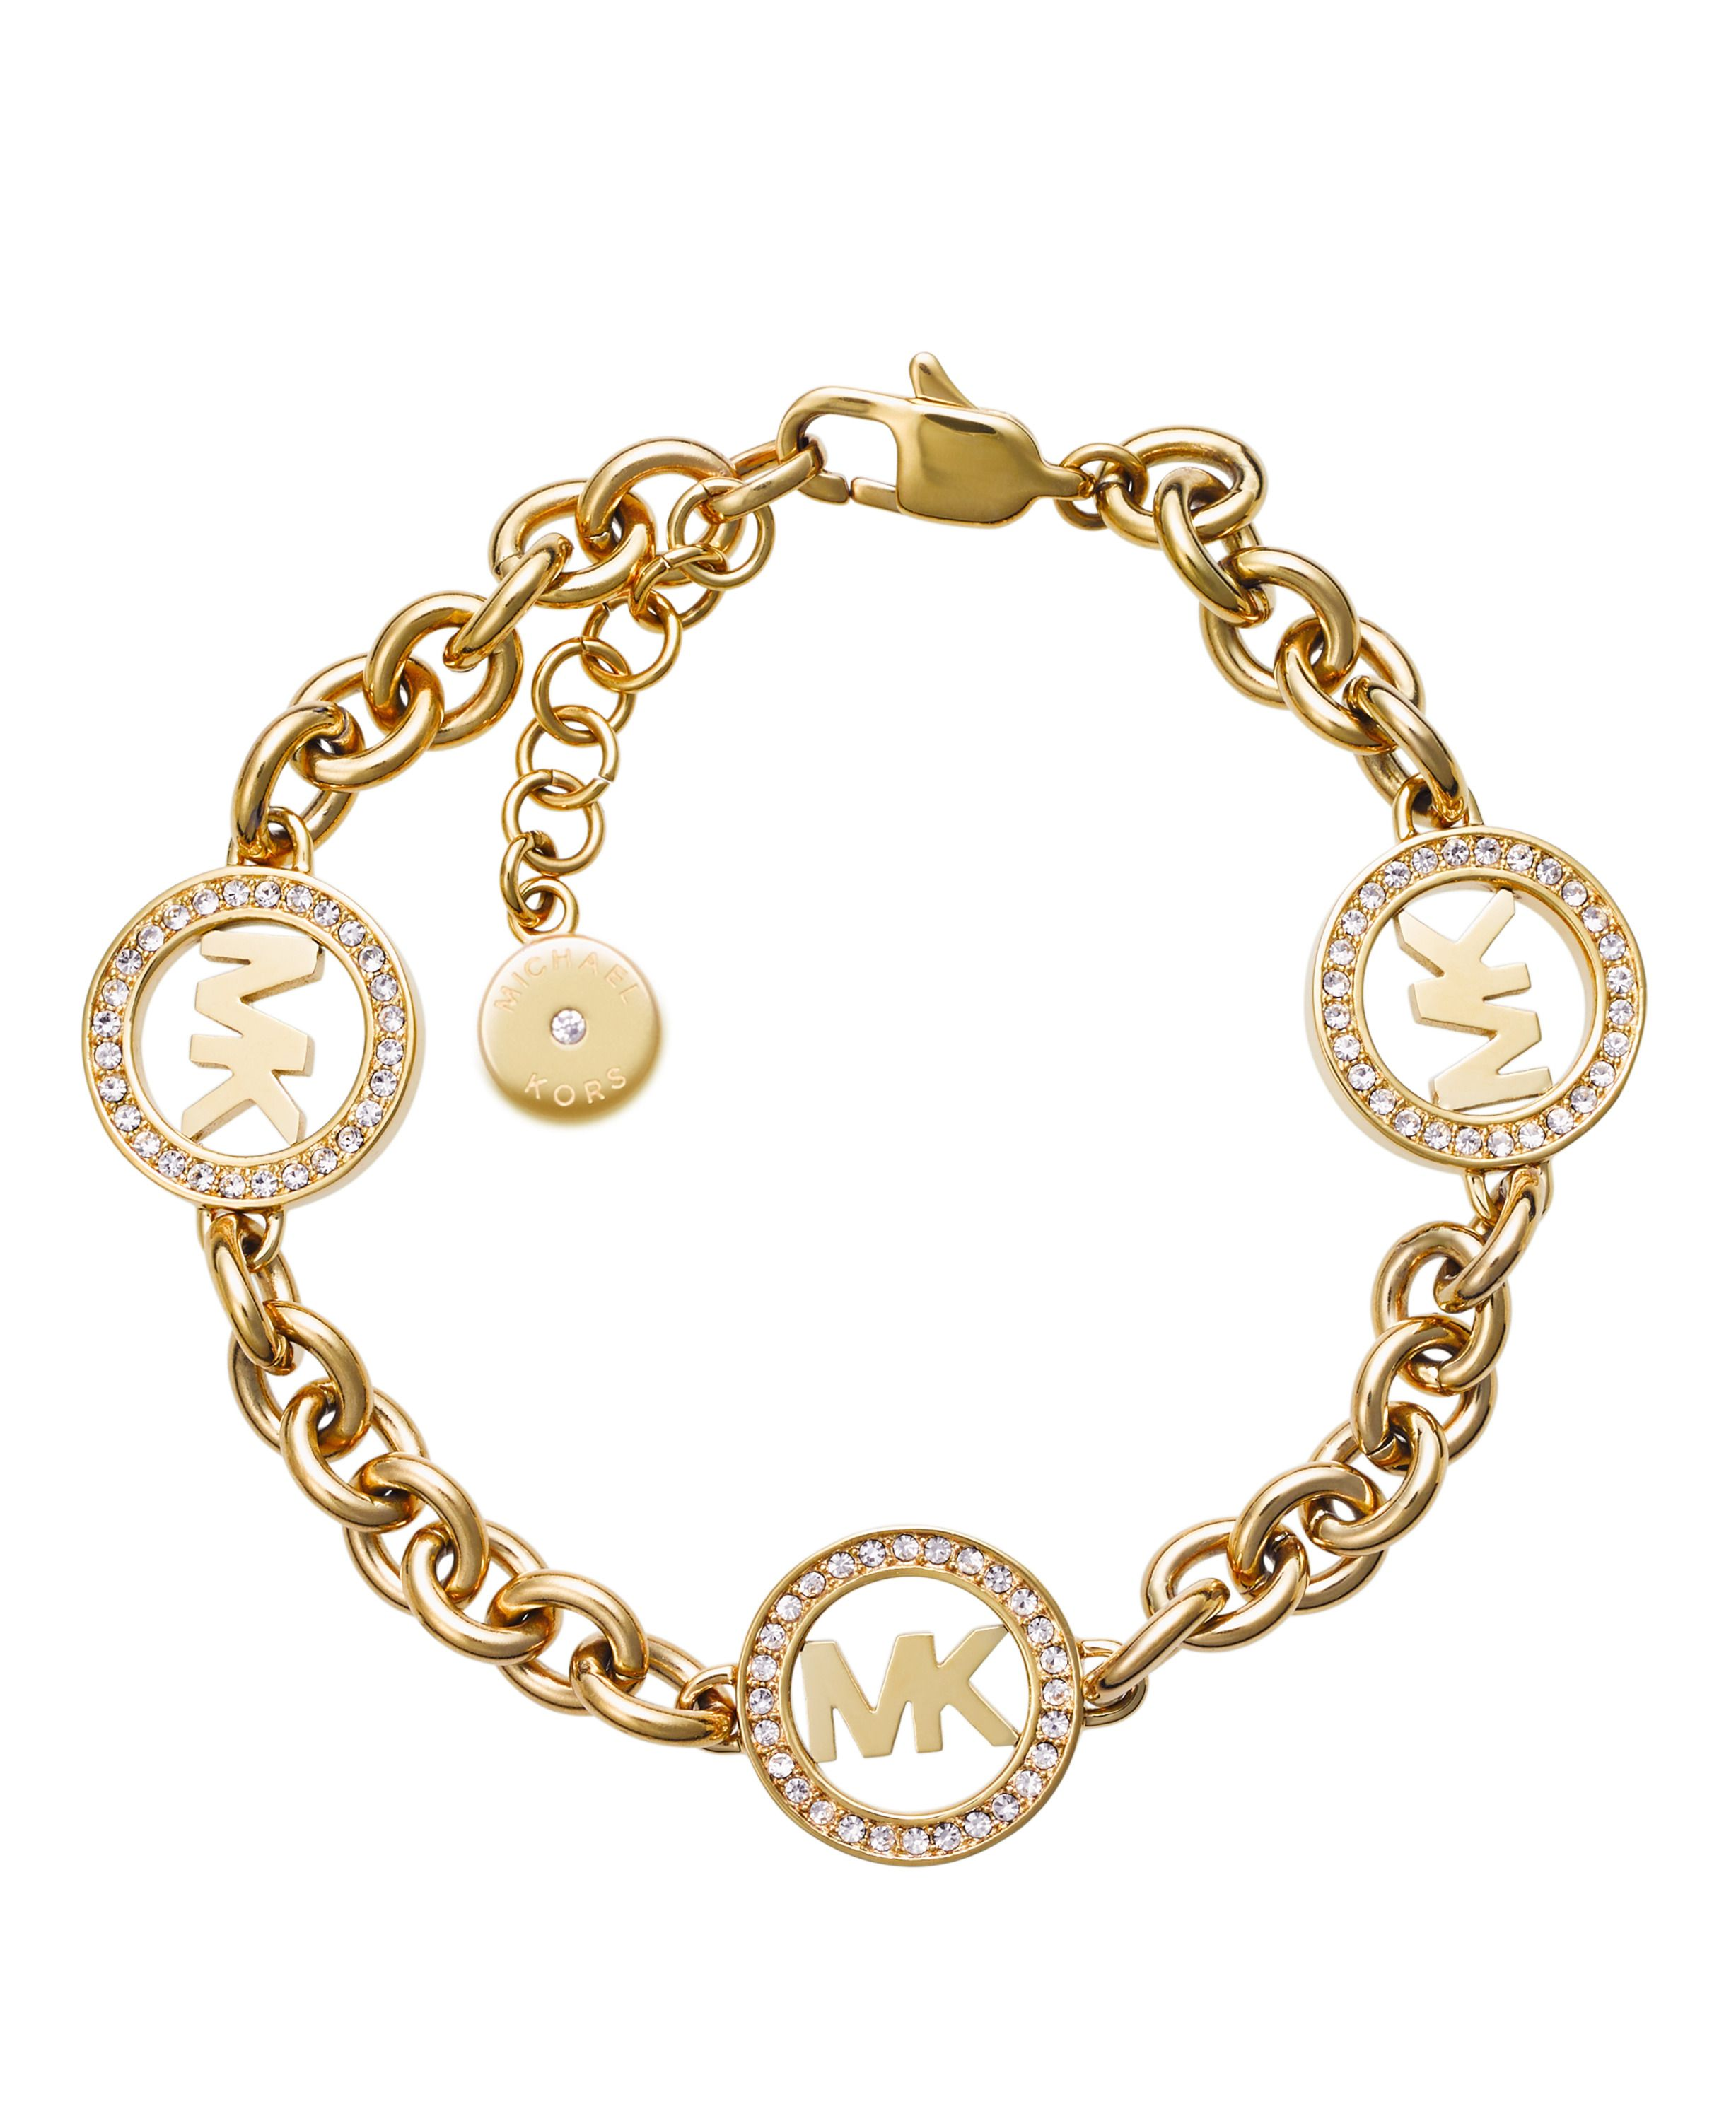 Michael Kors MKJ4729710 Ladies Bracelet Gold Metallic